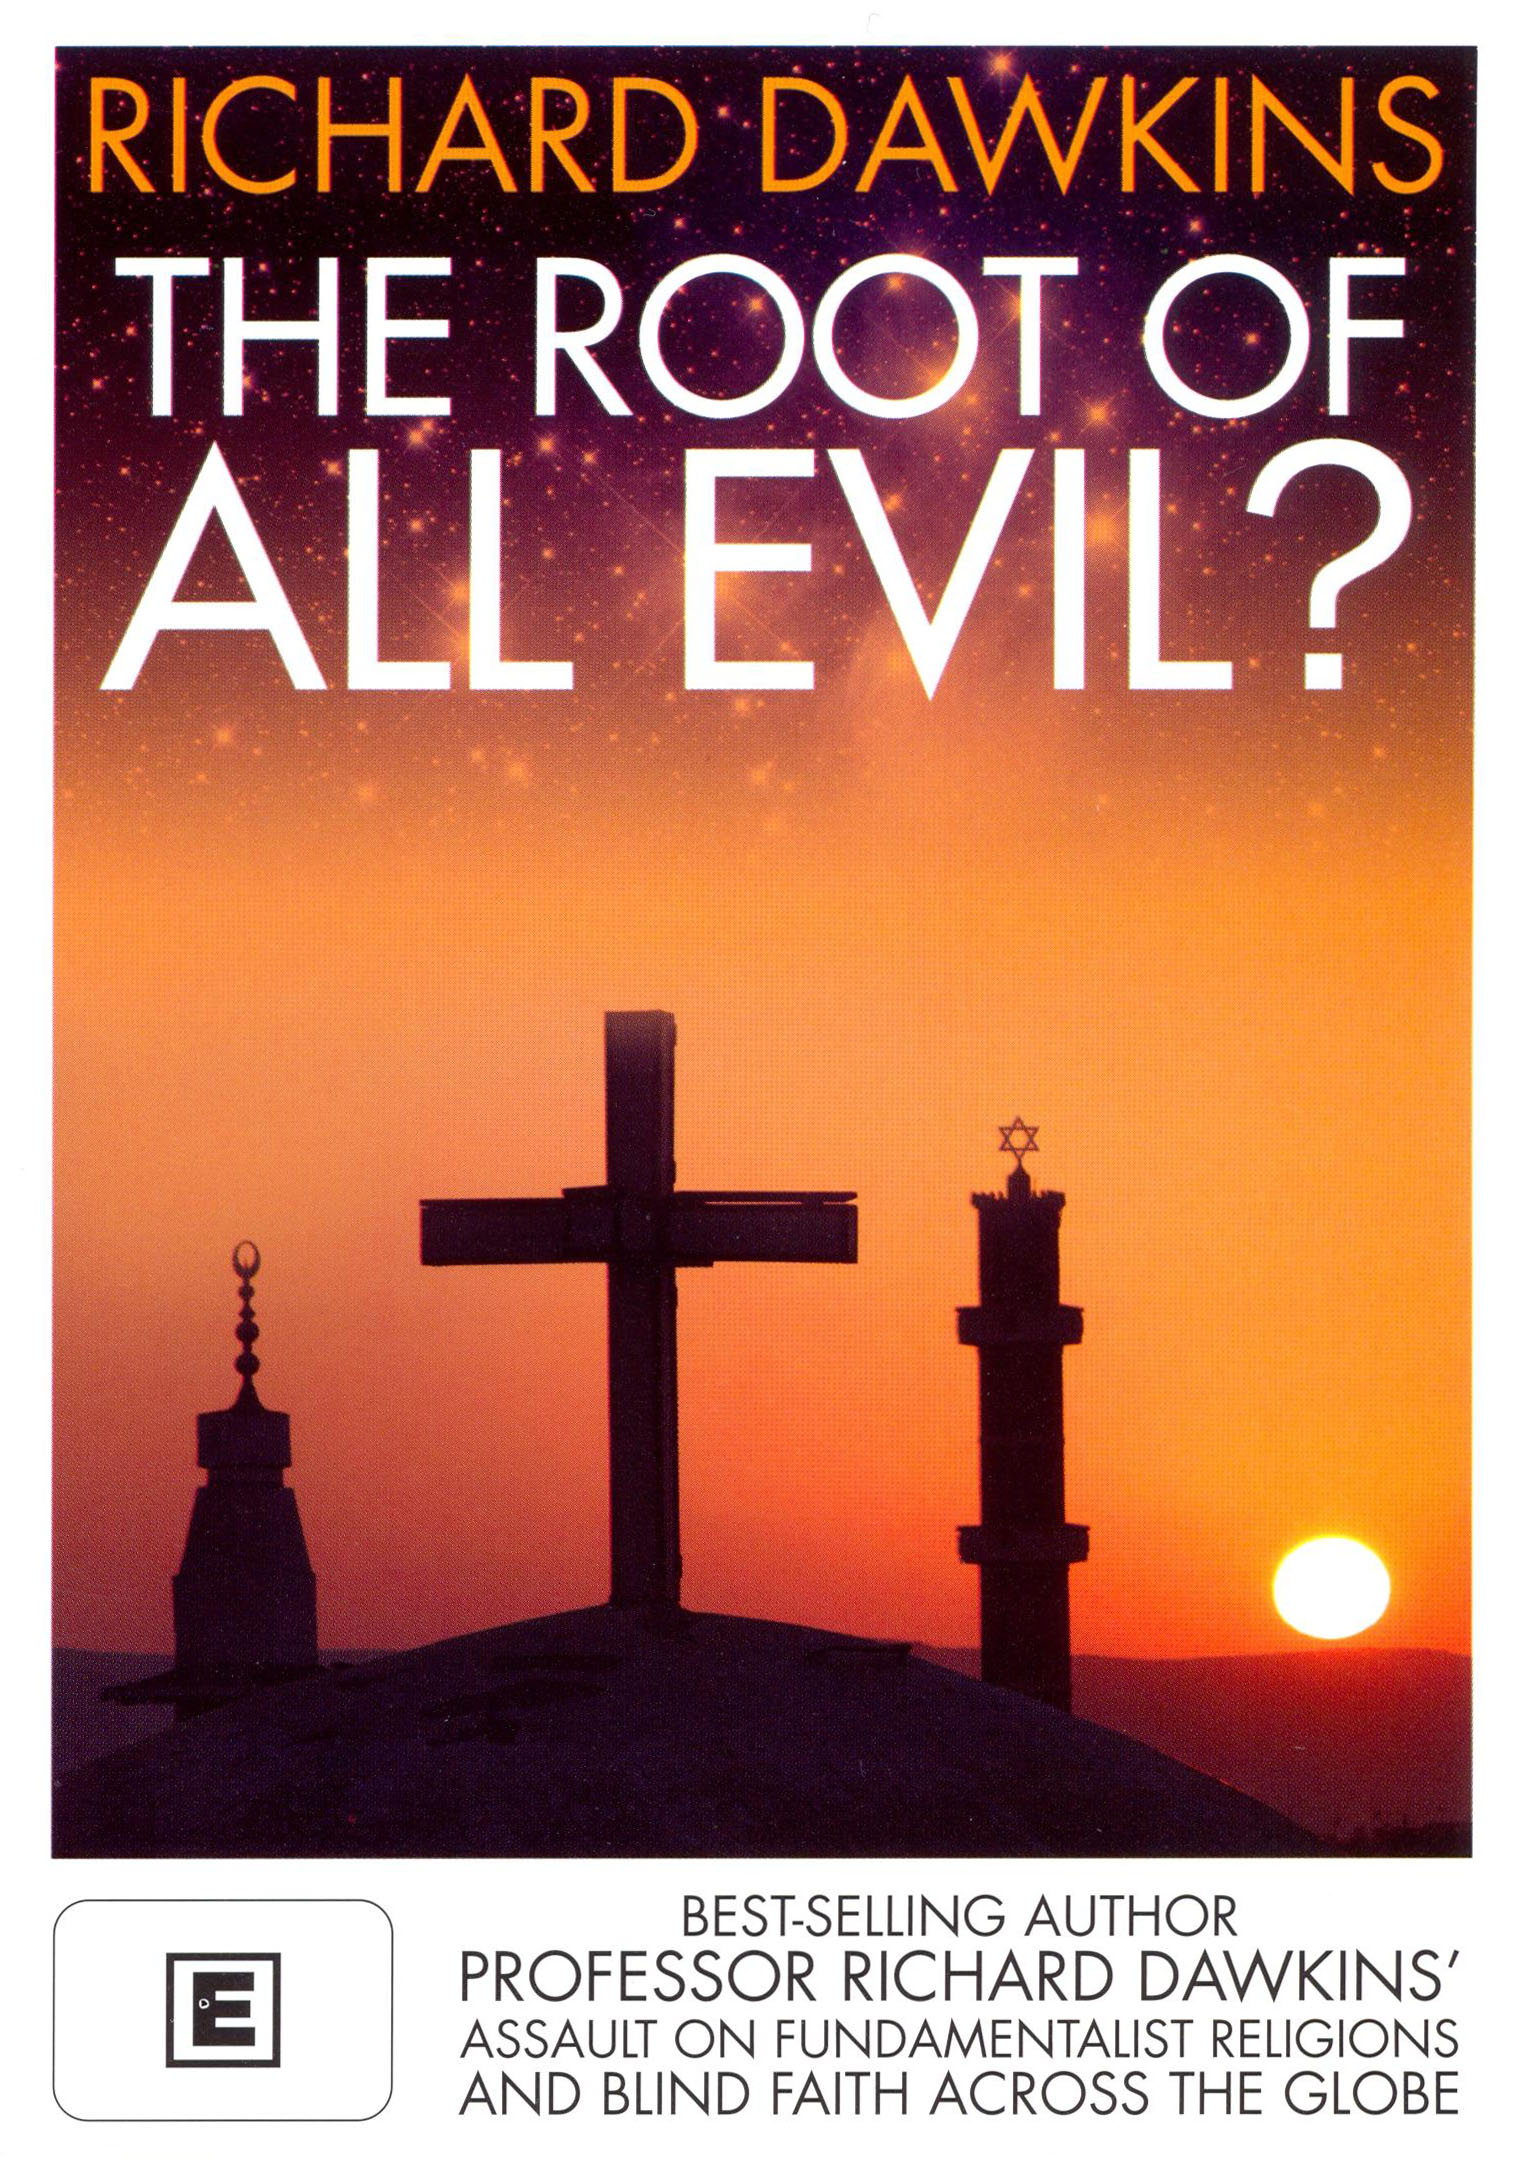 religion is the root of all evil essay The love of money: a direct quote from 1 timothy 6:10 kjv: for the love of money is the root of all evil: this famous verse from the king james version is often misquoted as saying money is the root, but the apostle paul is clearly talking about the love of money (greed).